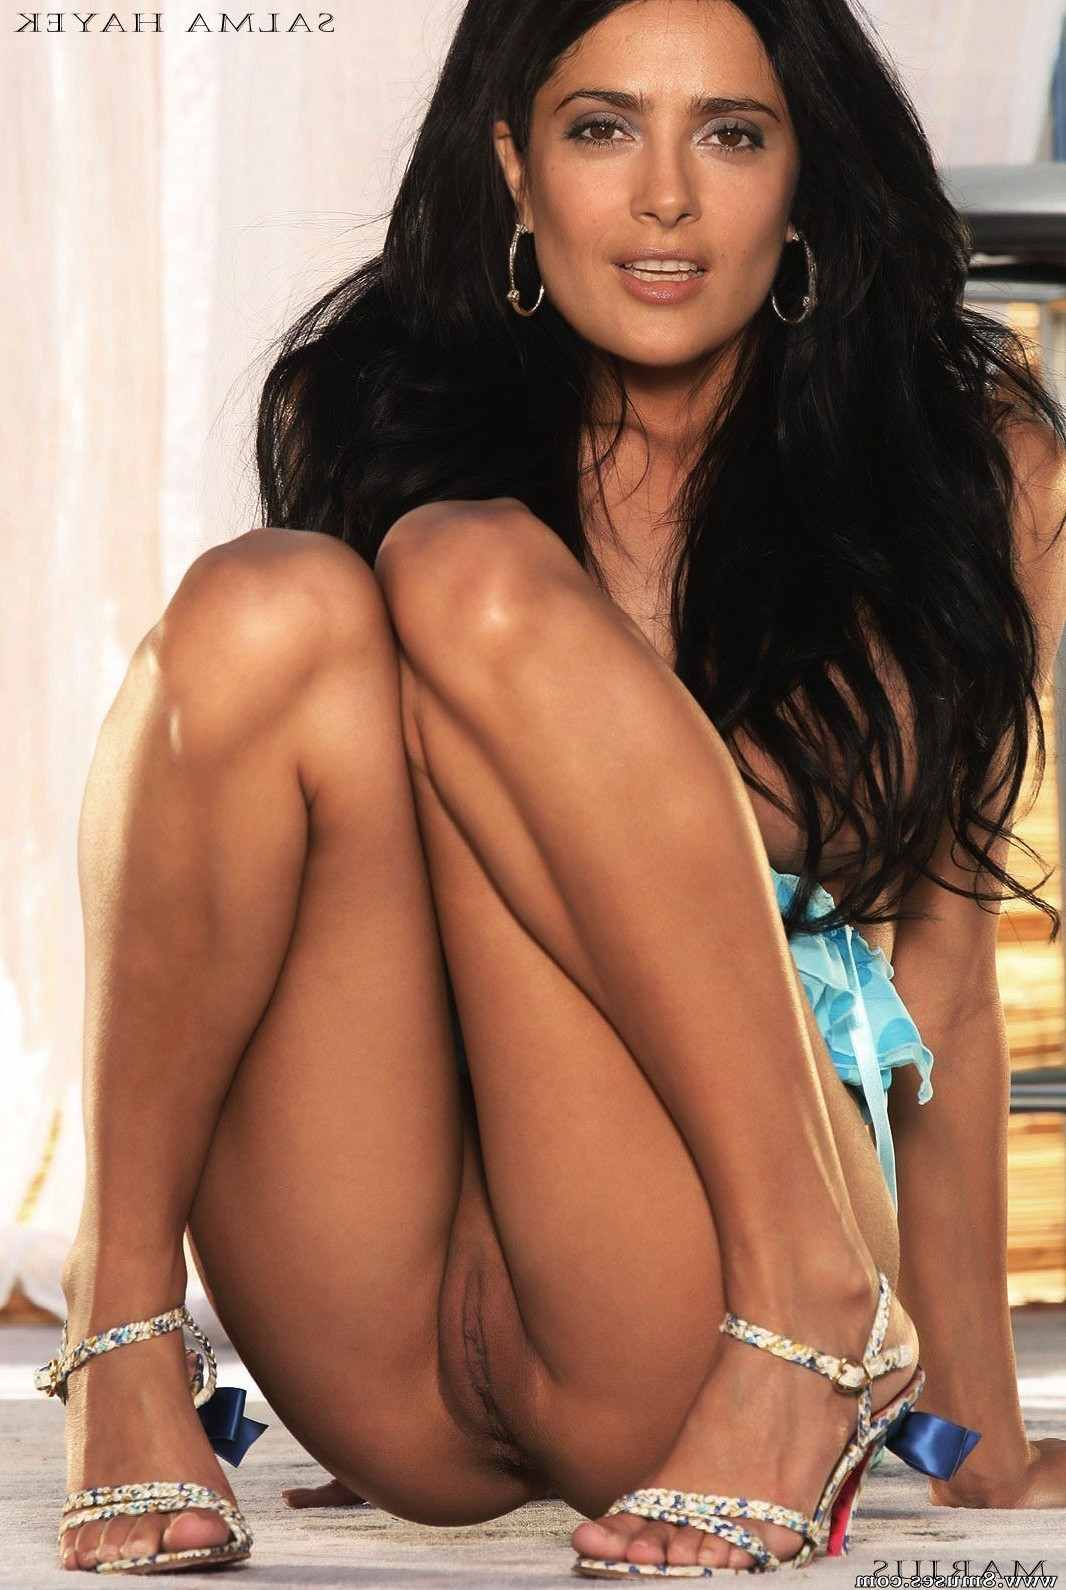 Fake-Celebrities-Sex-Pictures/Salma-Hayek Salma_Hayek__8muses_-_Sex_and_Porn_Comics_78.jpg